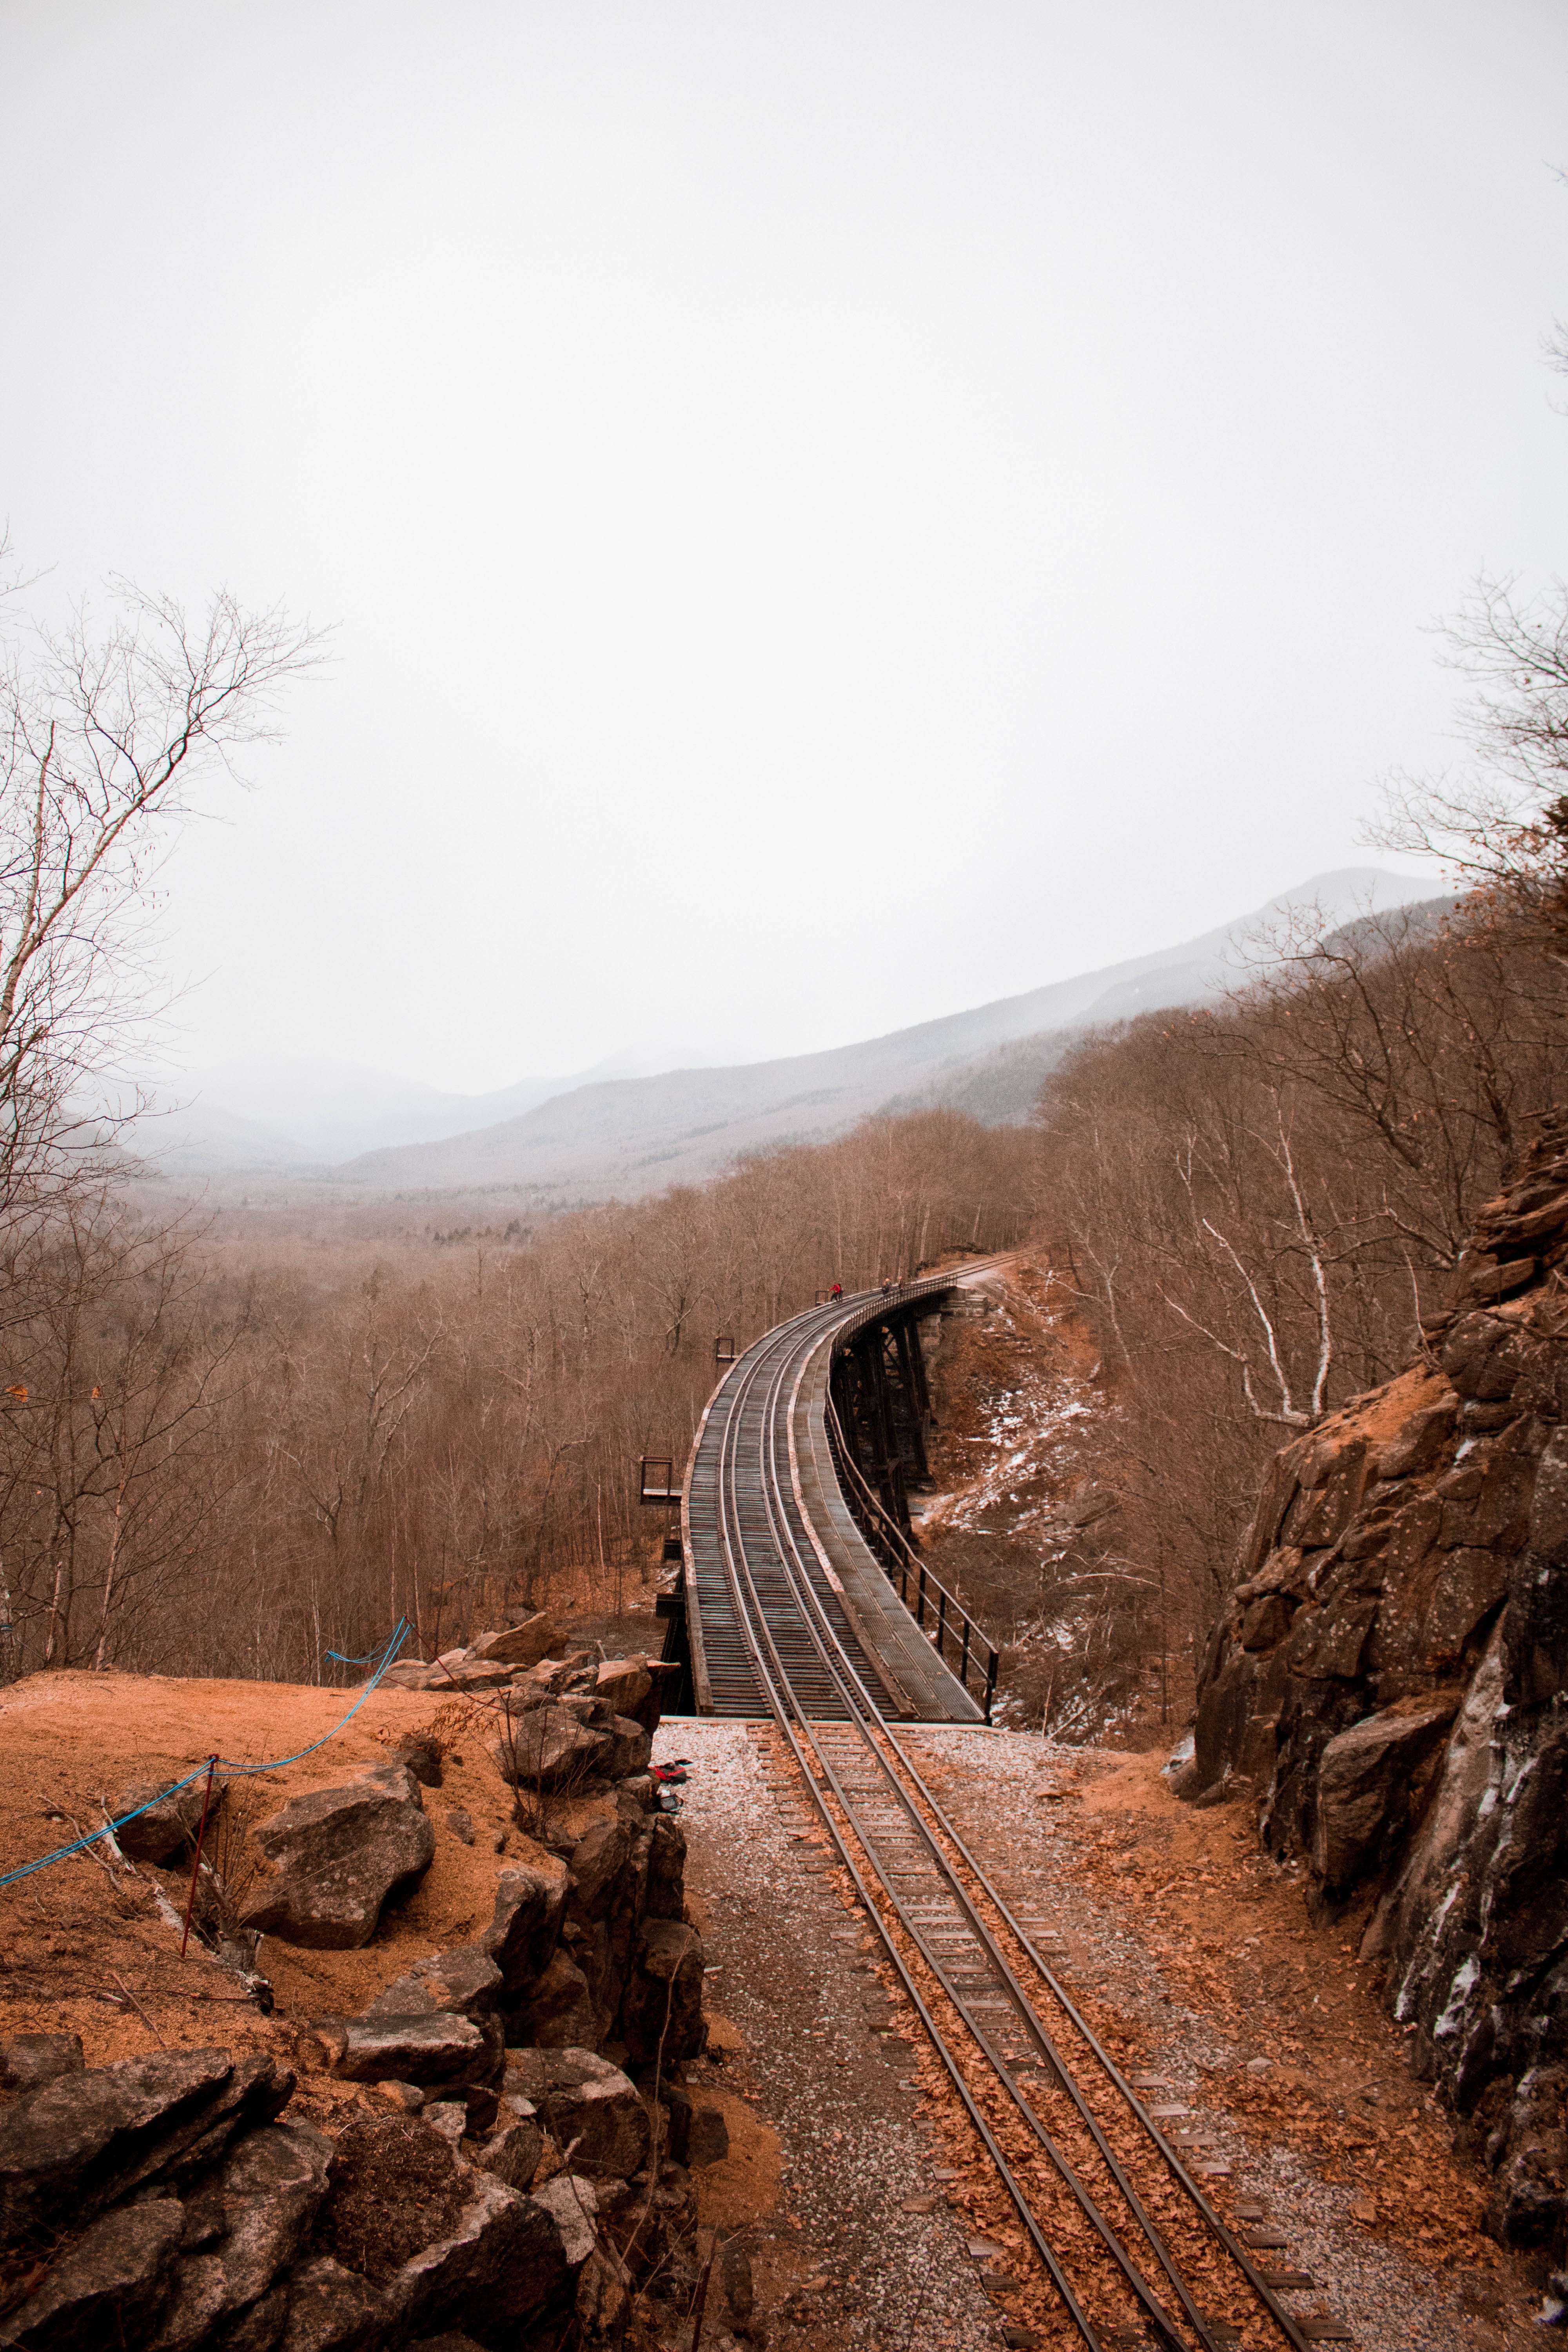 railway surrounded by bare trees during daytime